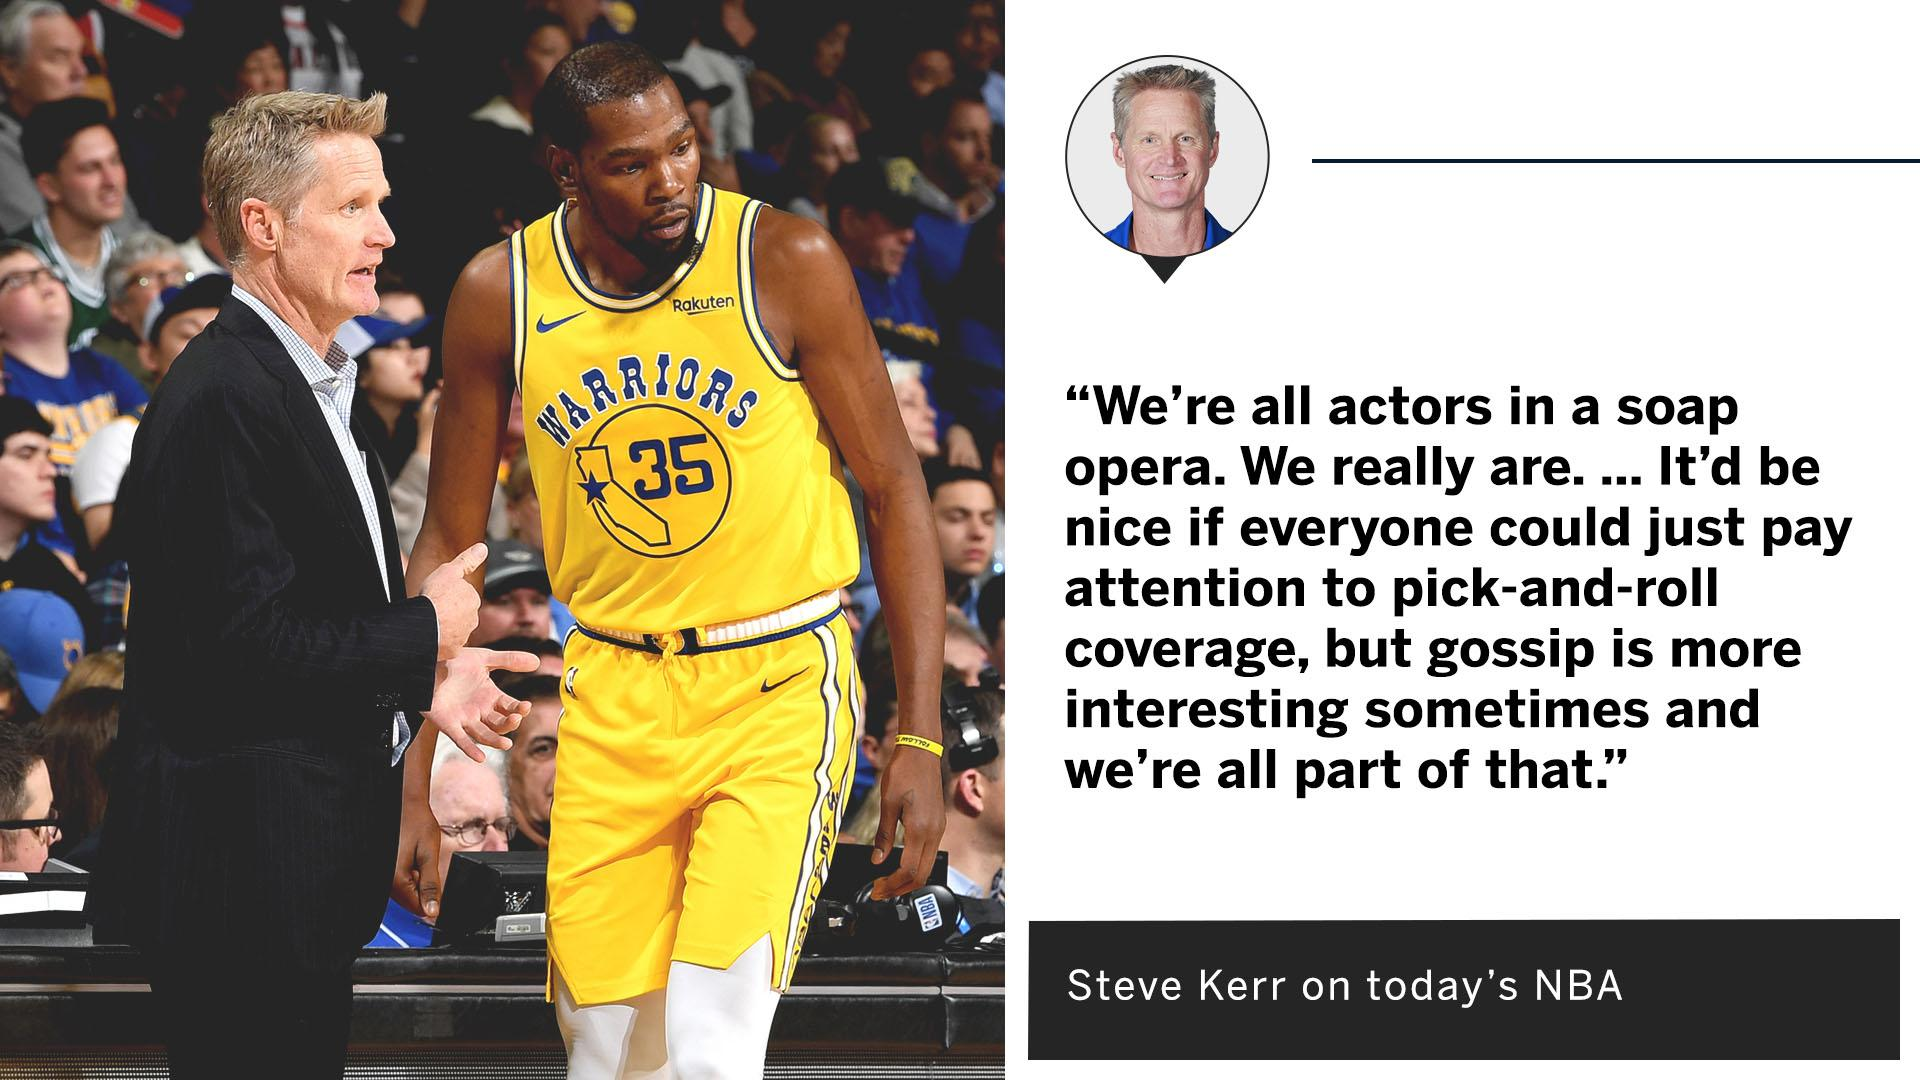 Steve Kerr puts it all into perspective. https://t.co/QHTxQwhY5E